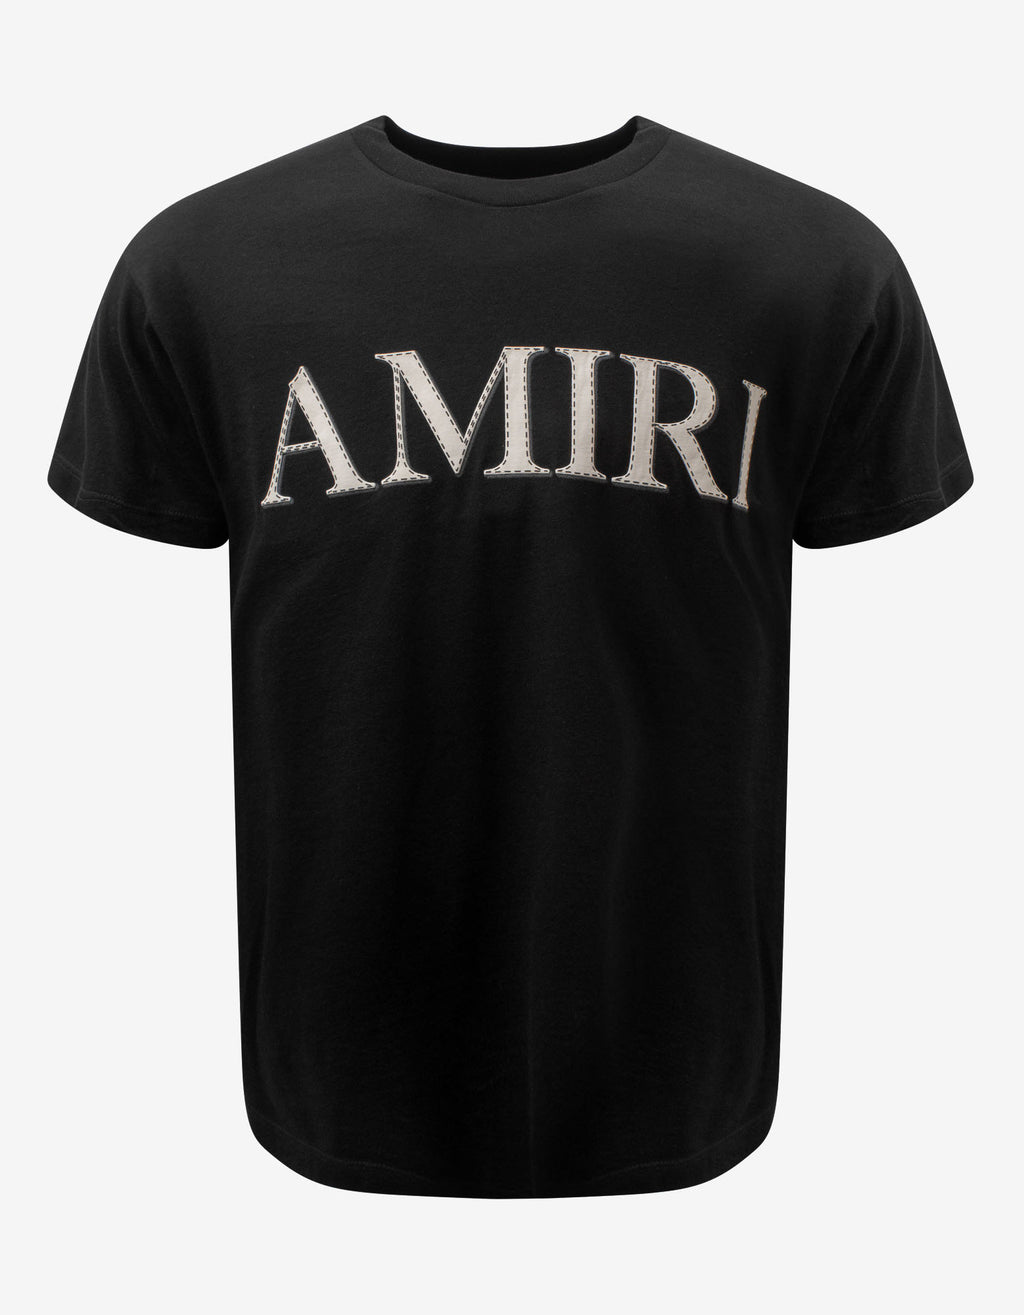 Black Stitch Amiri T-Shirt